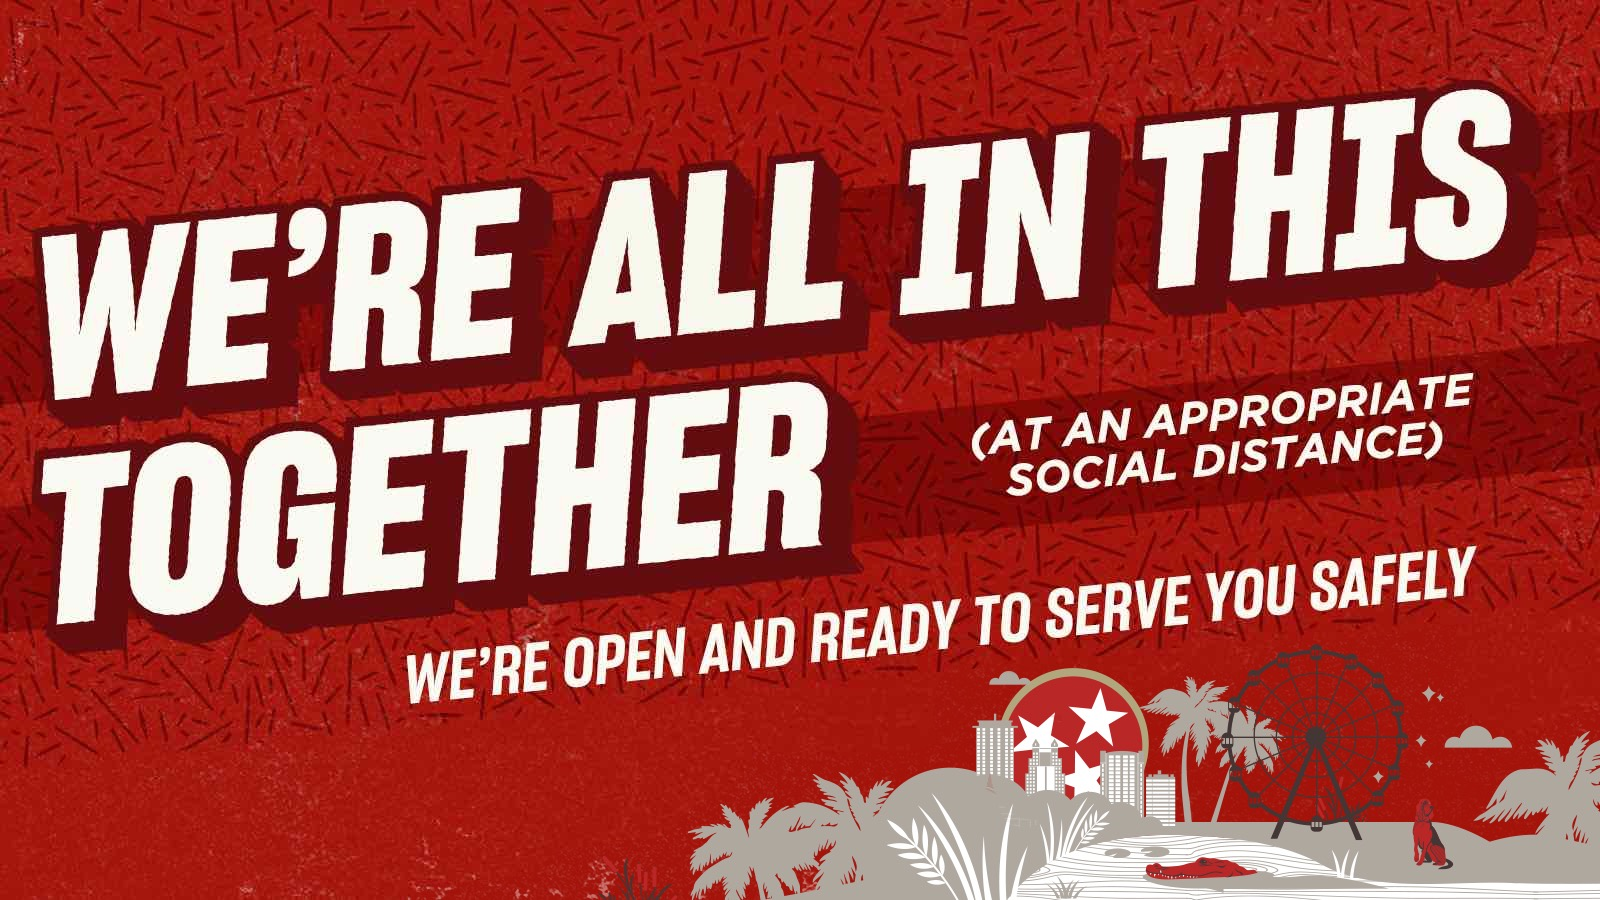 We're All In This Together (at an appropriate social distance) - We're open and ready to serve you safely!